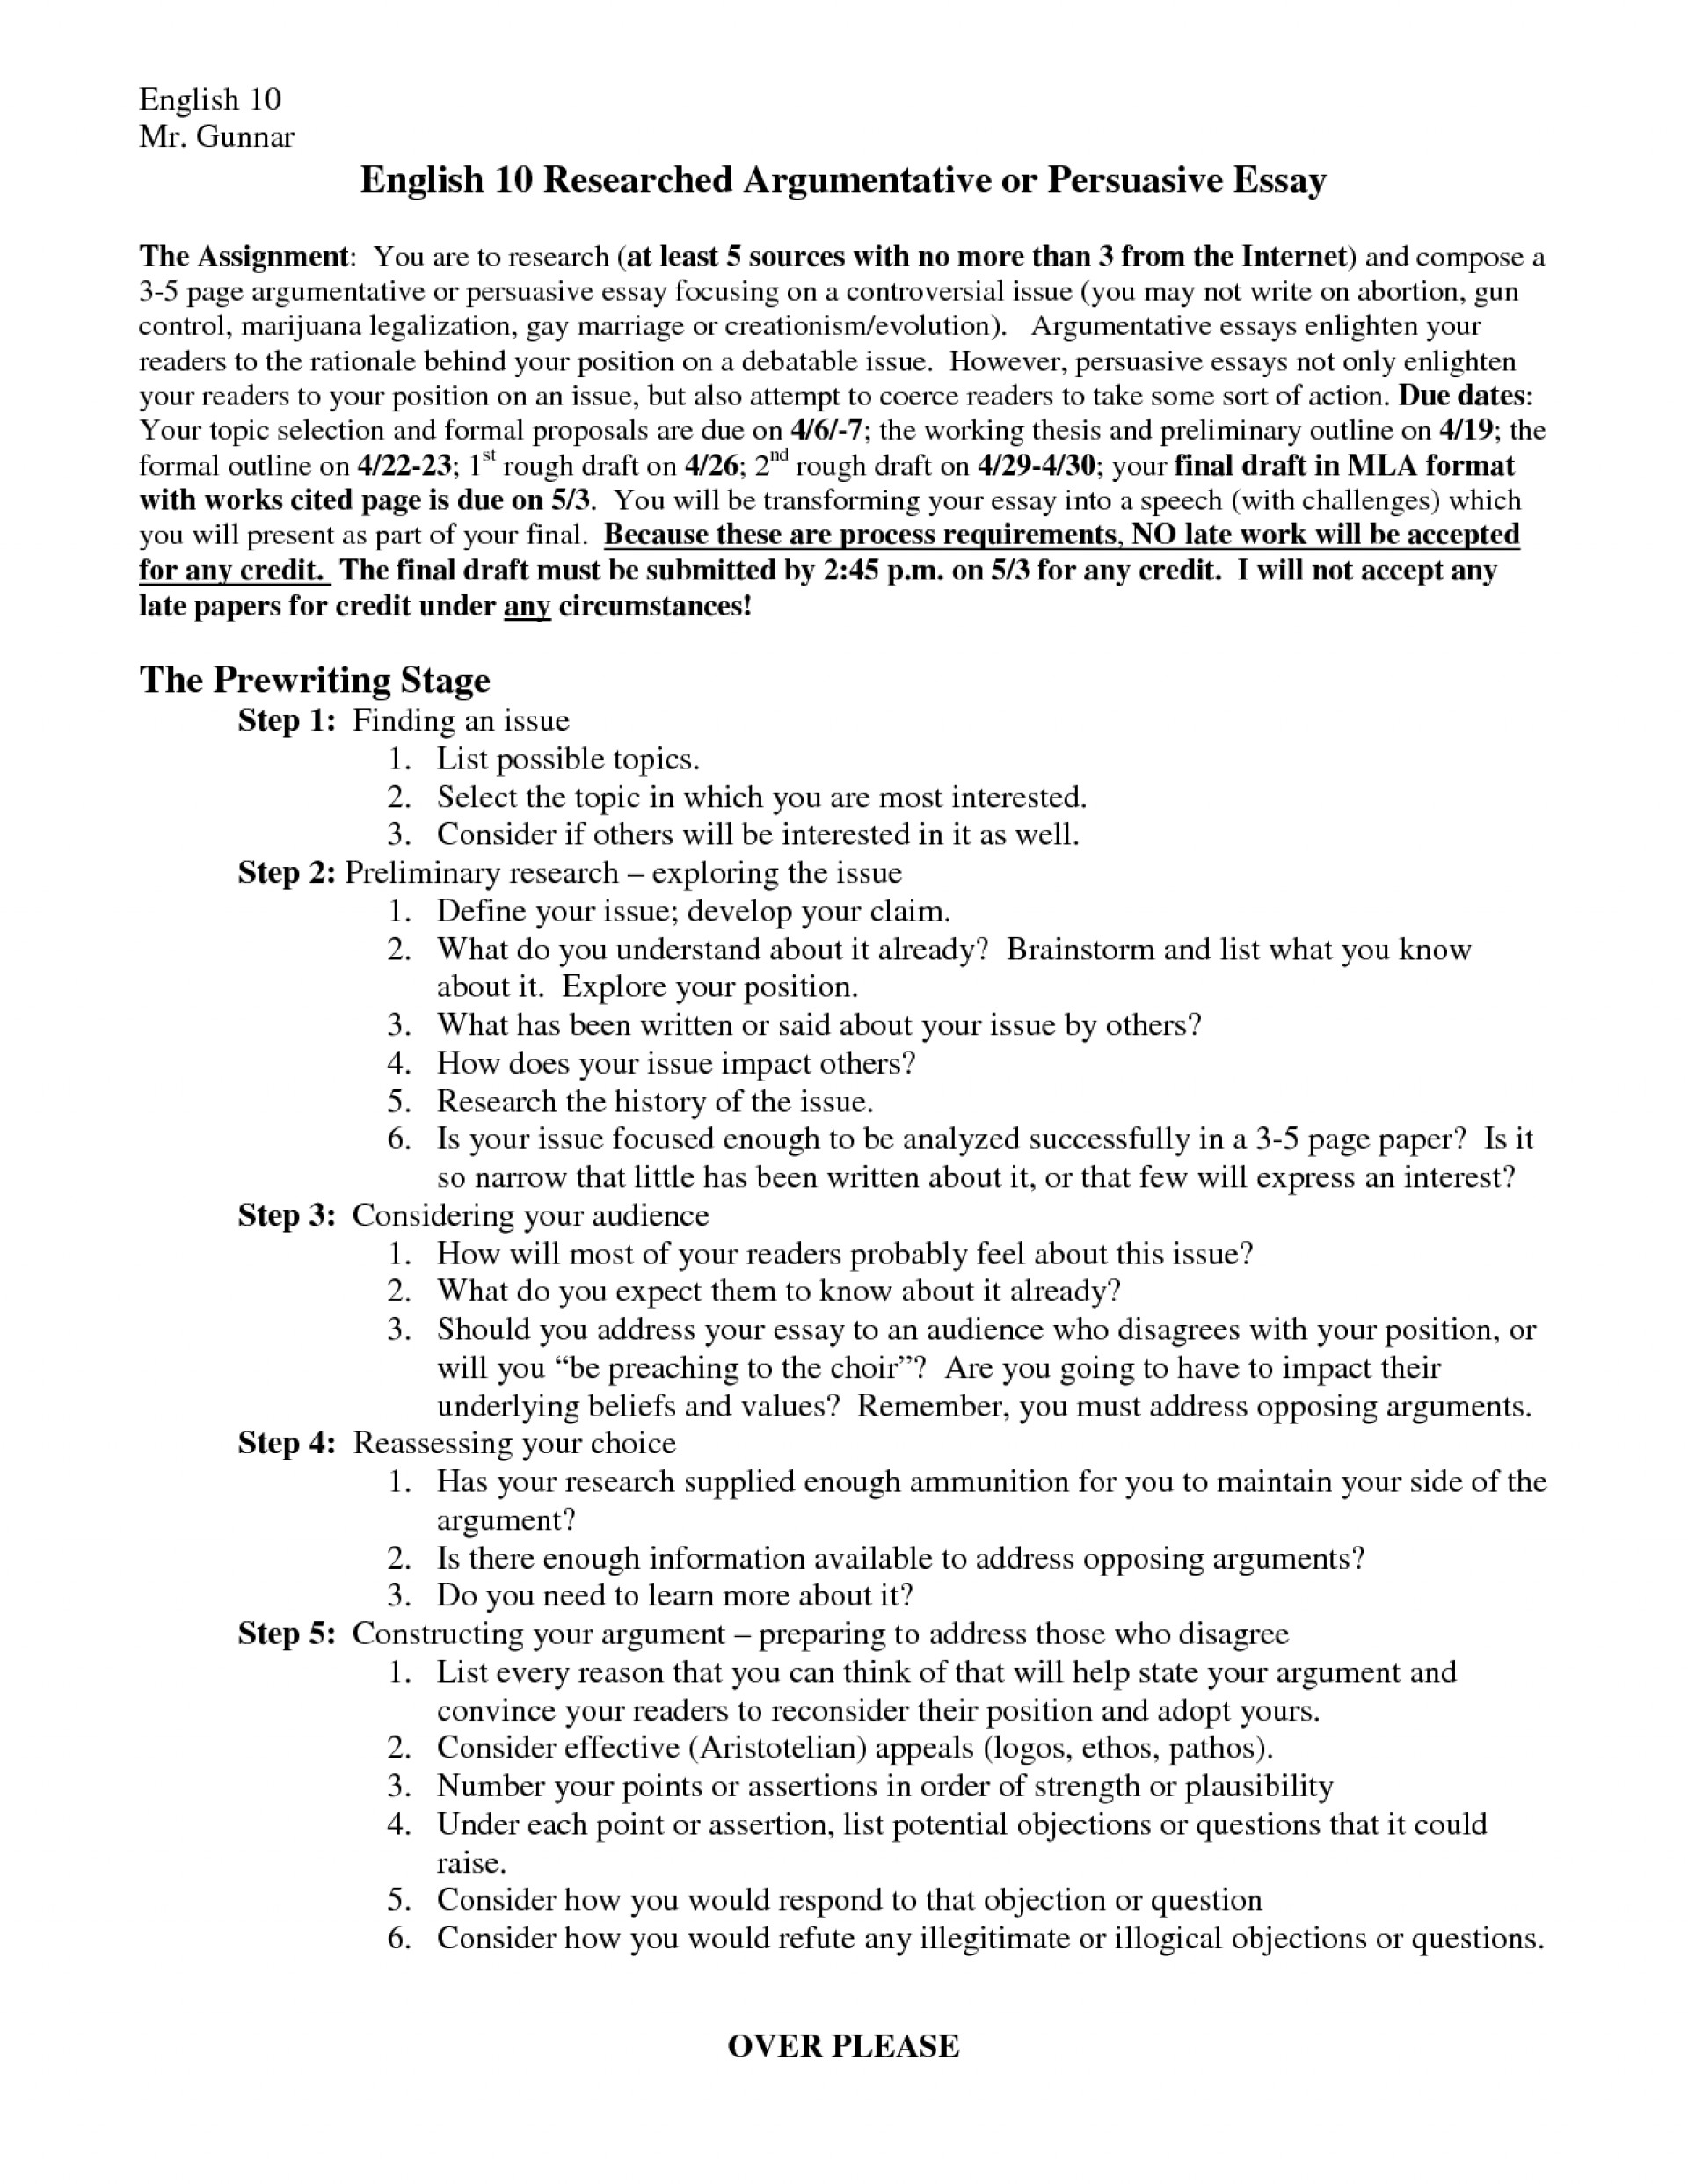 007 How To Do An Outline For Research Paper Example Mla Format Argumentative Essay 472291 Stupendous A Write Sample 1920